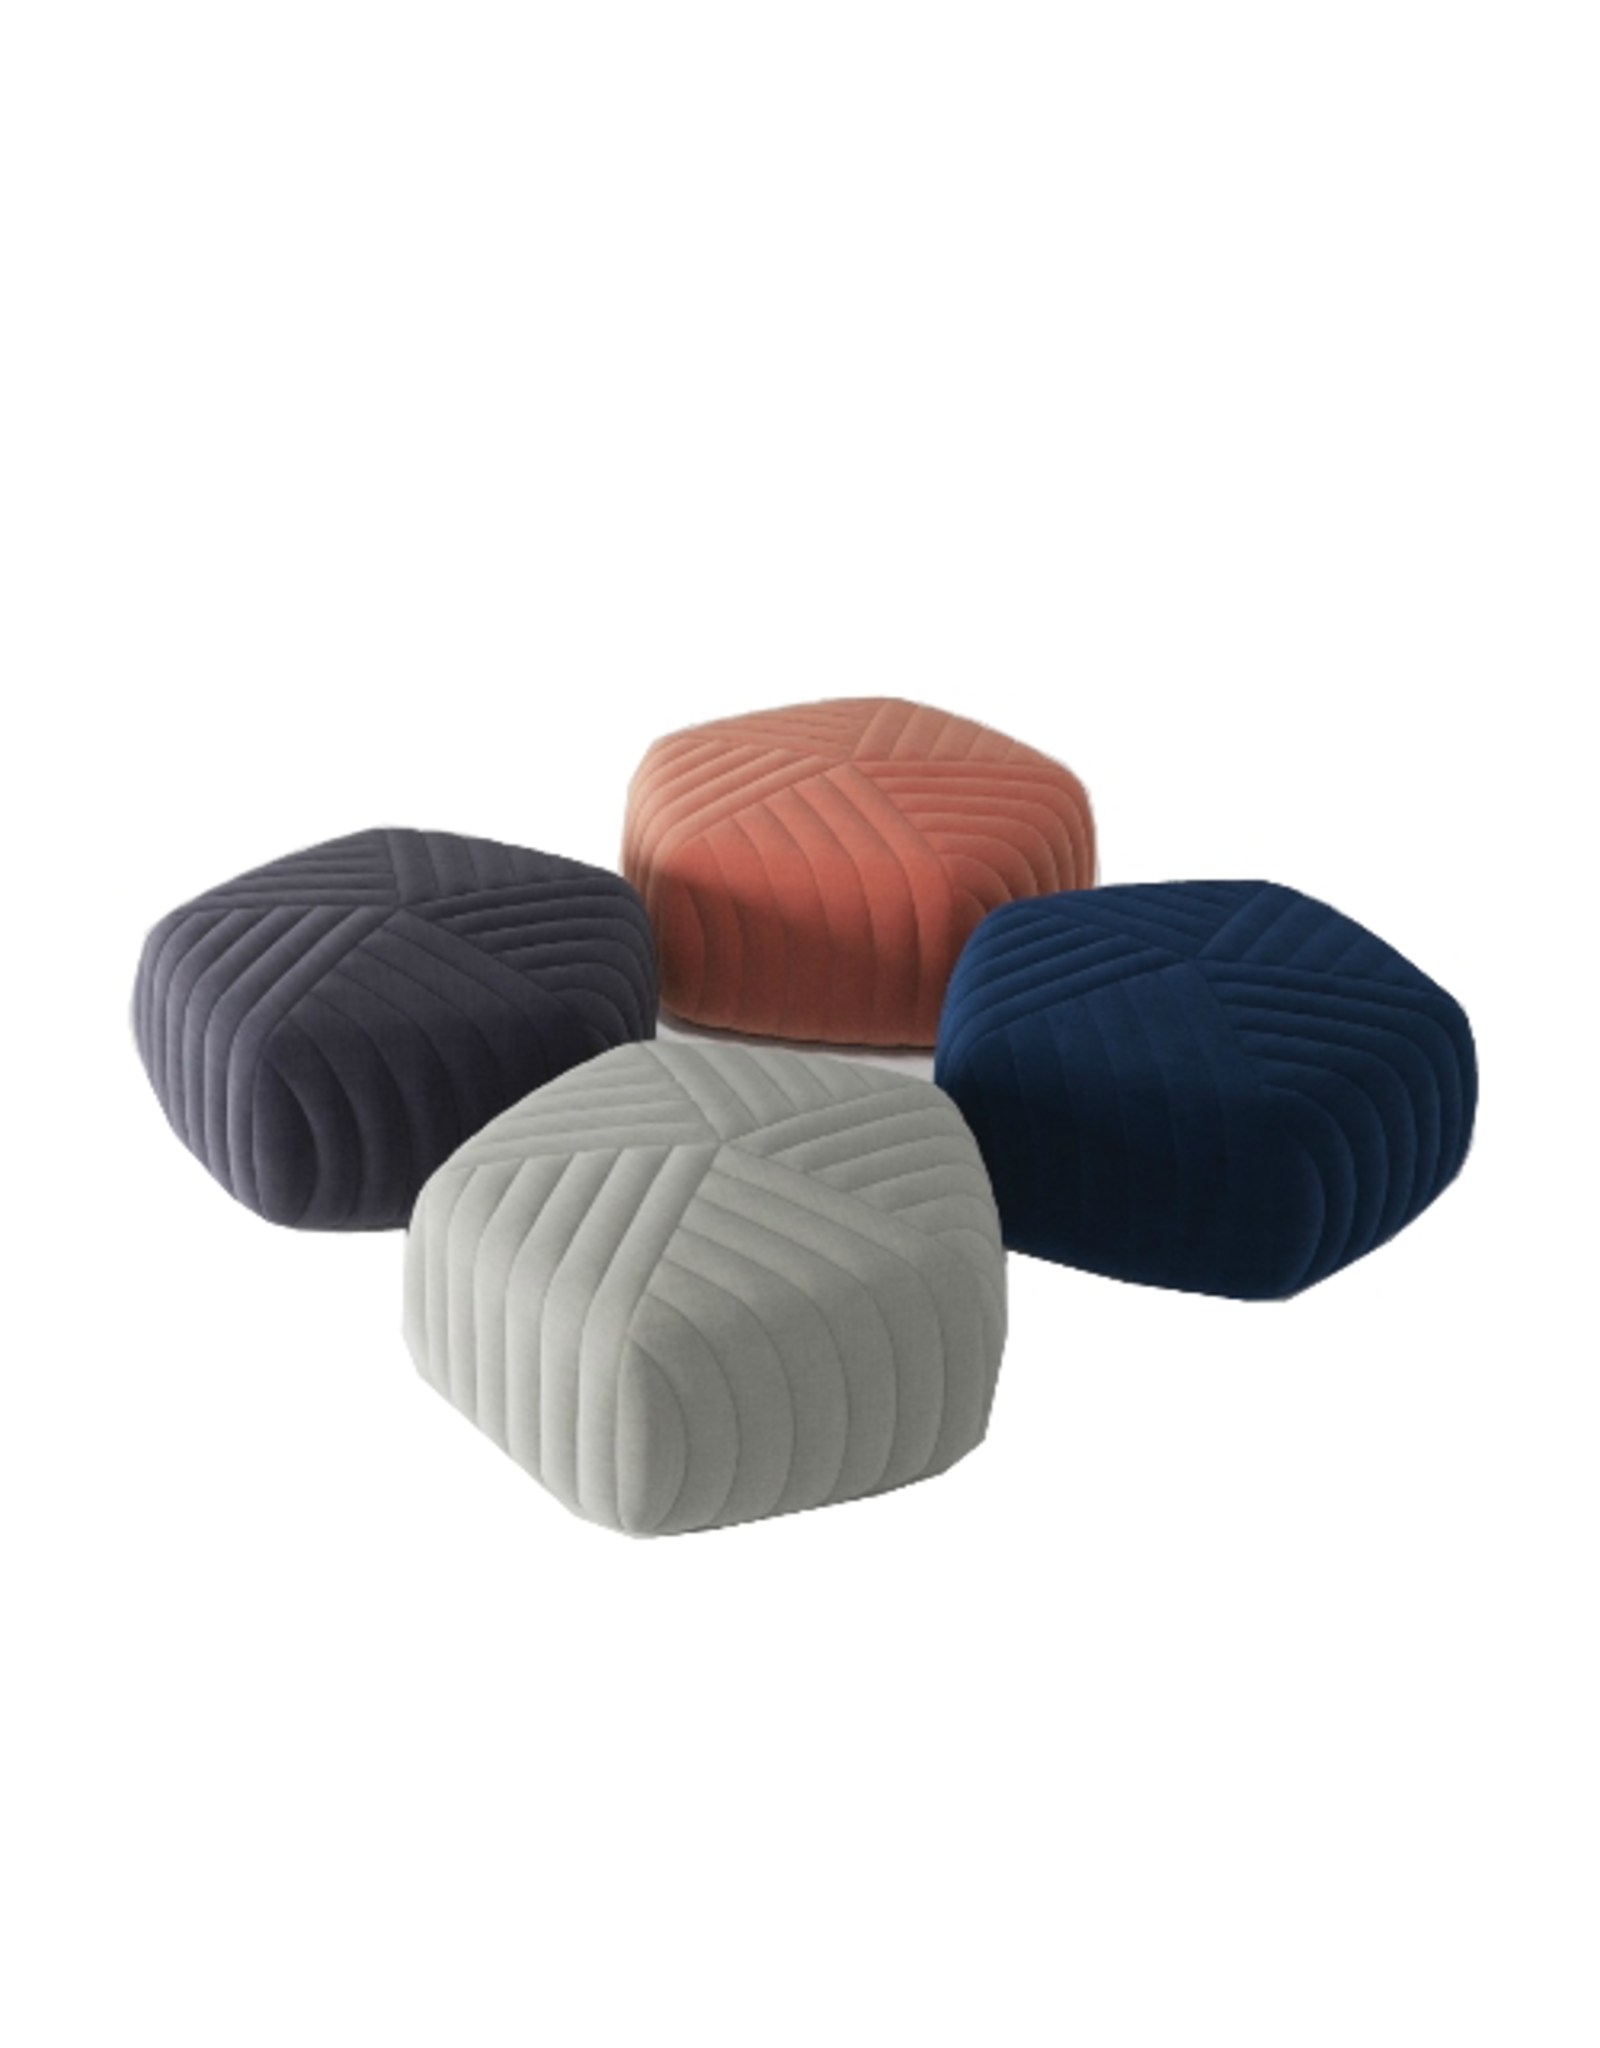 (DISPLAY) FIVE POUF IN REMIX FABRIC